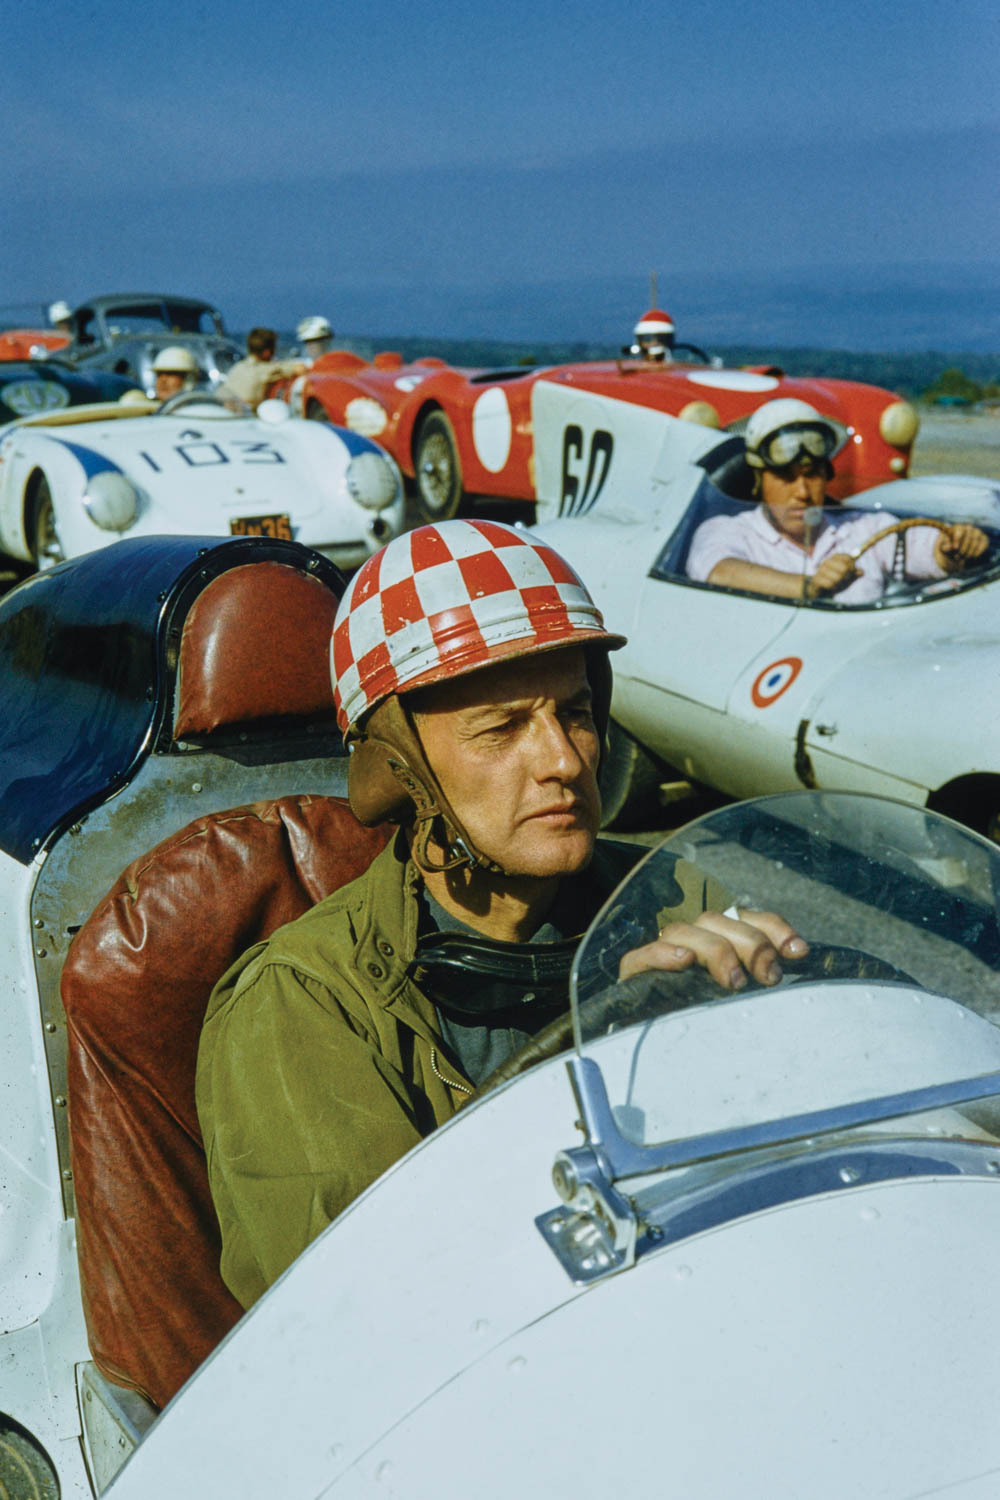 Primitive helmets, collared shirts, and not a roll bar in sight—the racers of the SCCA's early era were made of stern stuff.